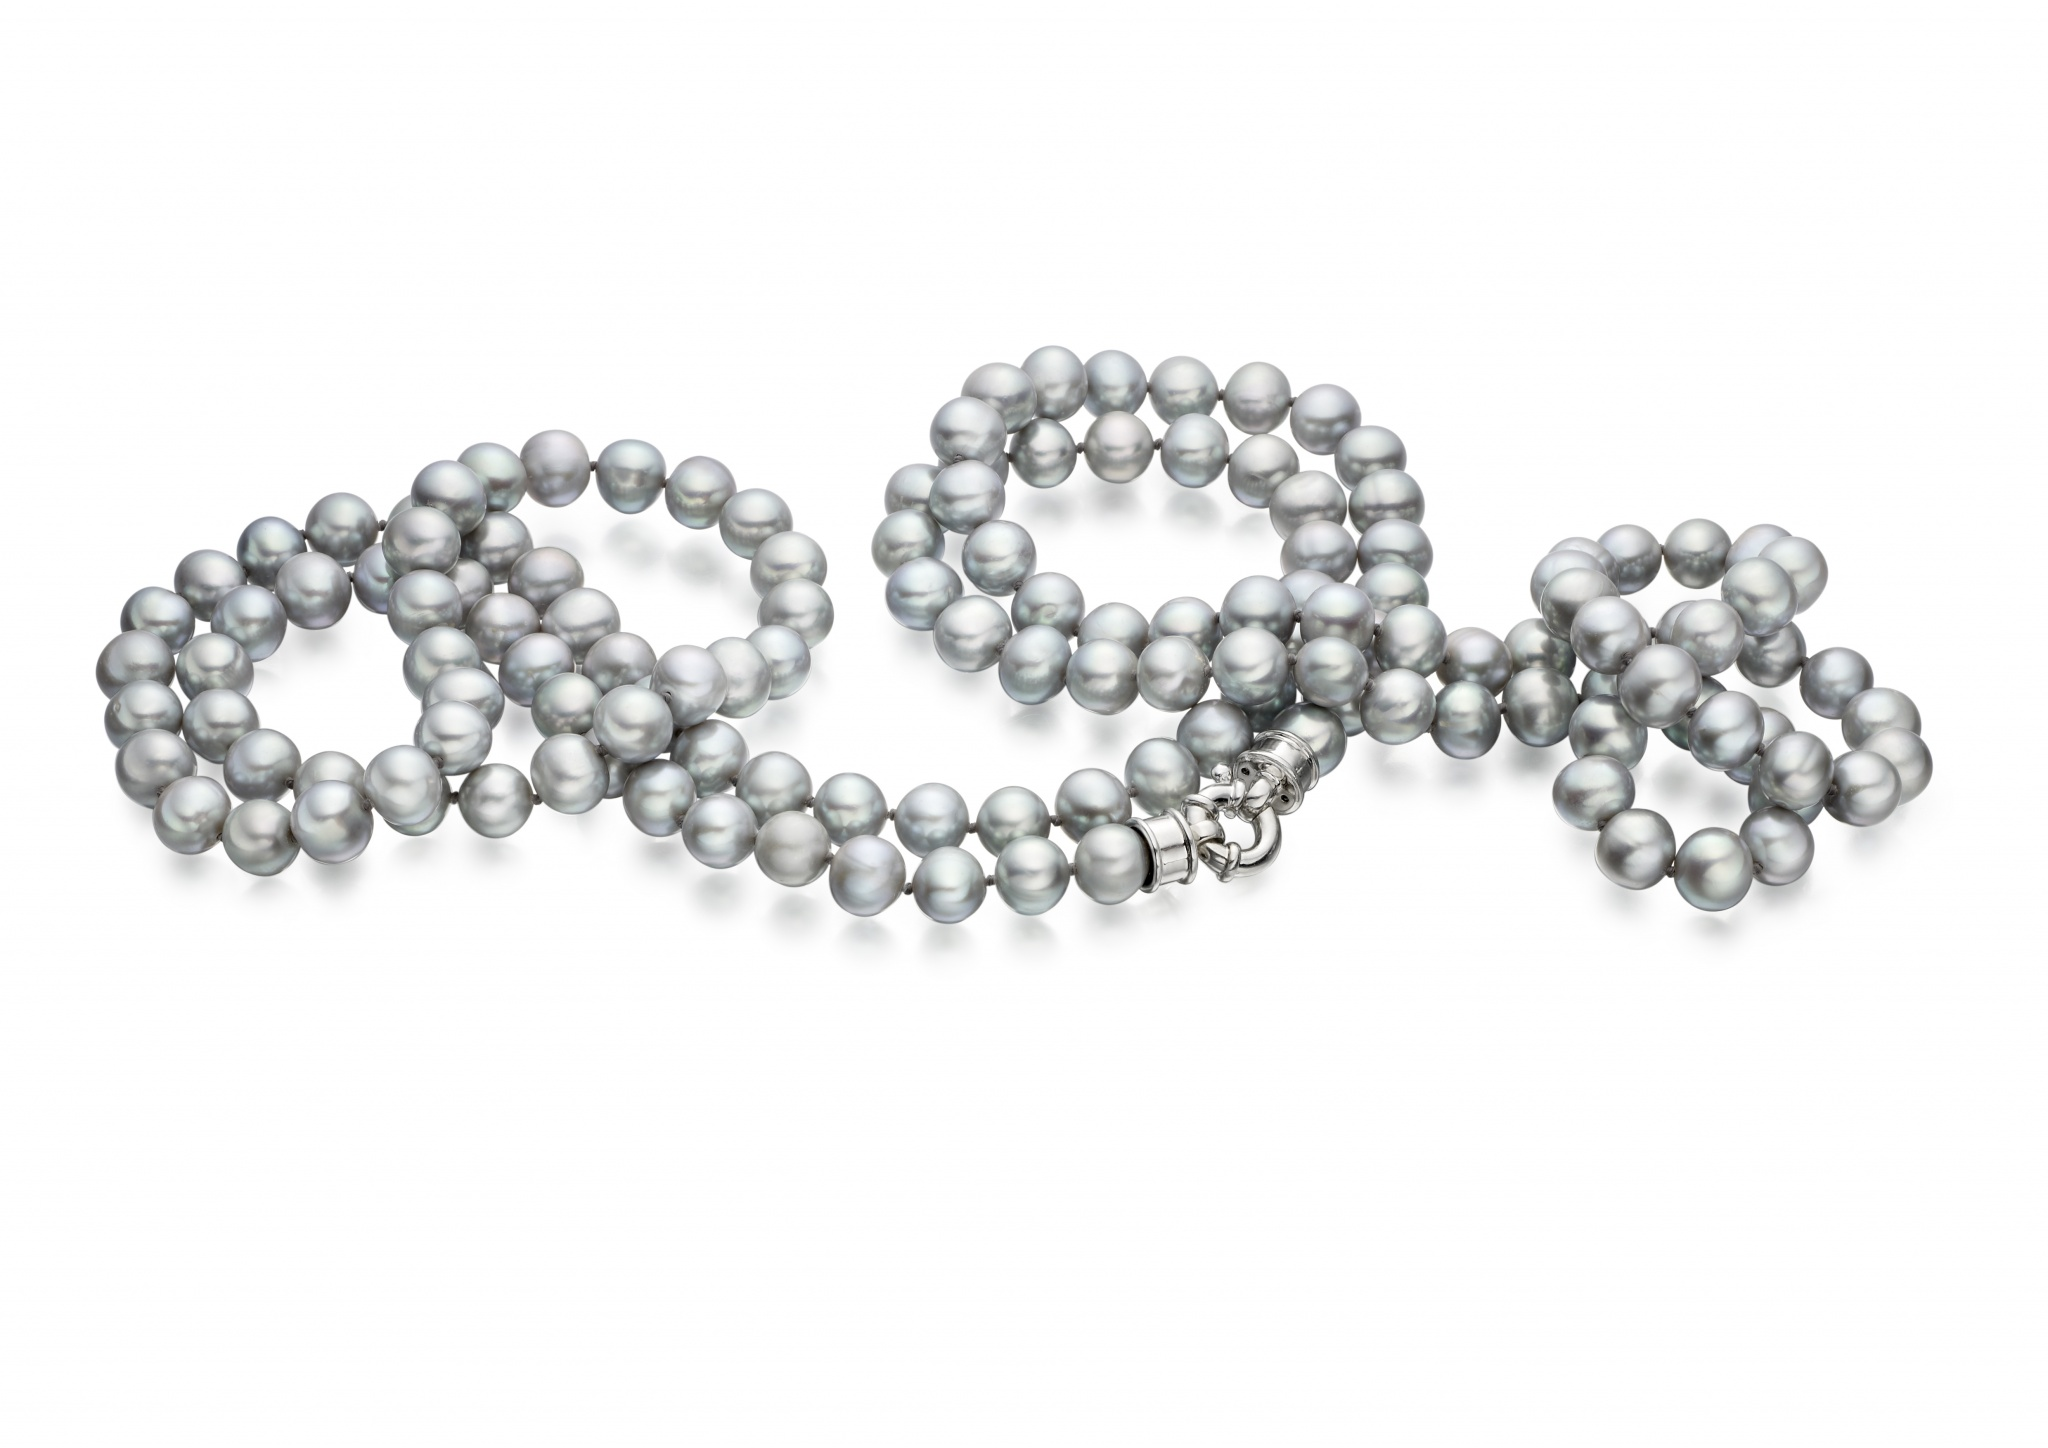 Long Grey Freshwater Pearl Rope Necklace with Silver Clasp-FSGRSS0068-1